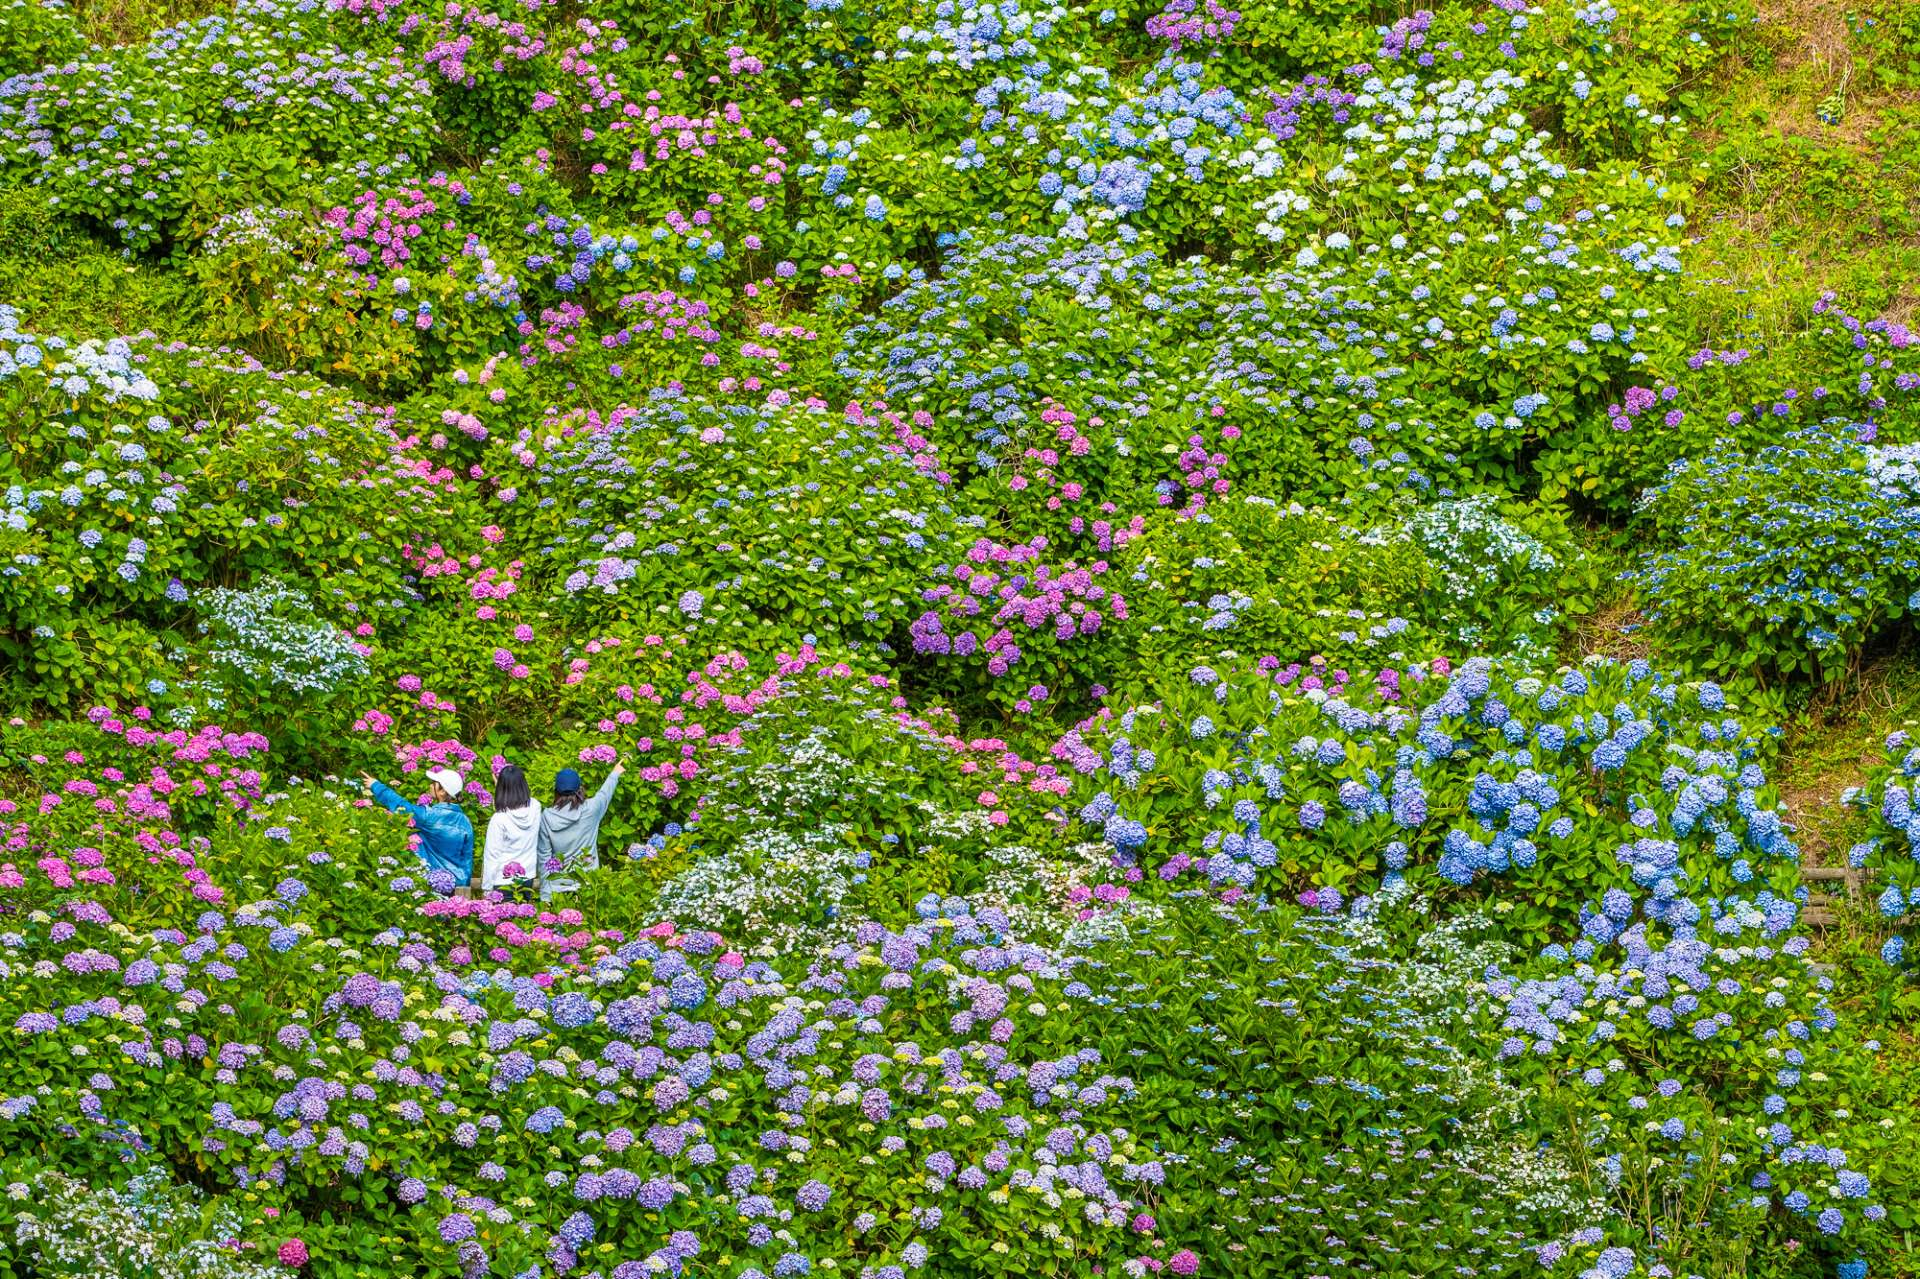 Surrounded by hydrangeas wherever you look!